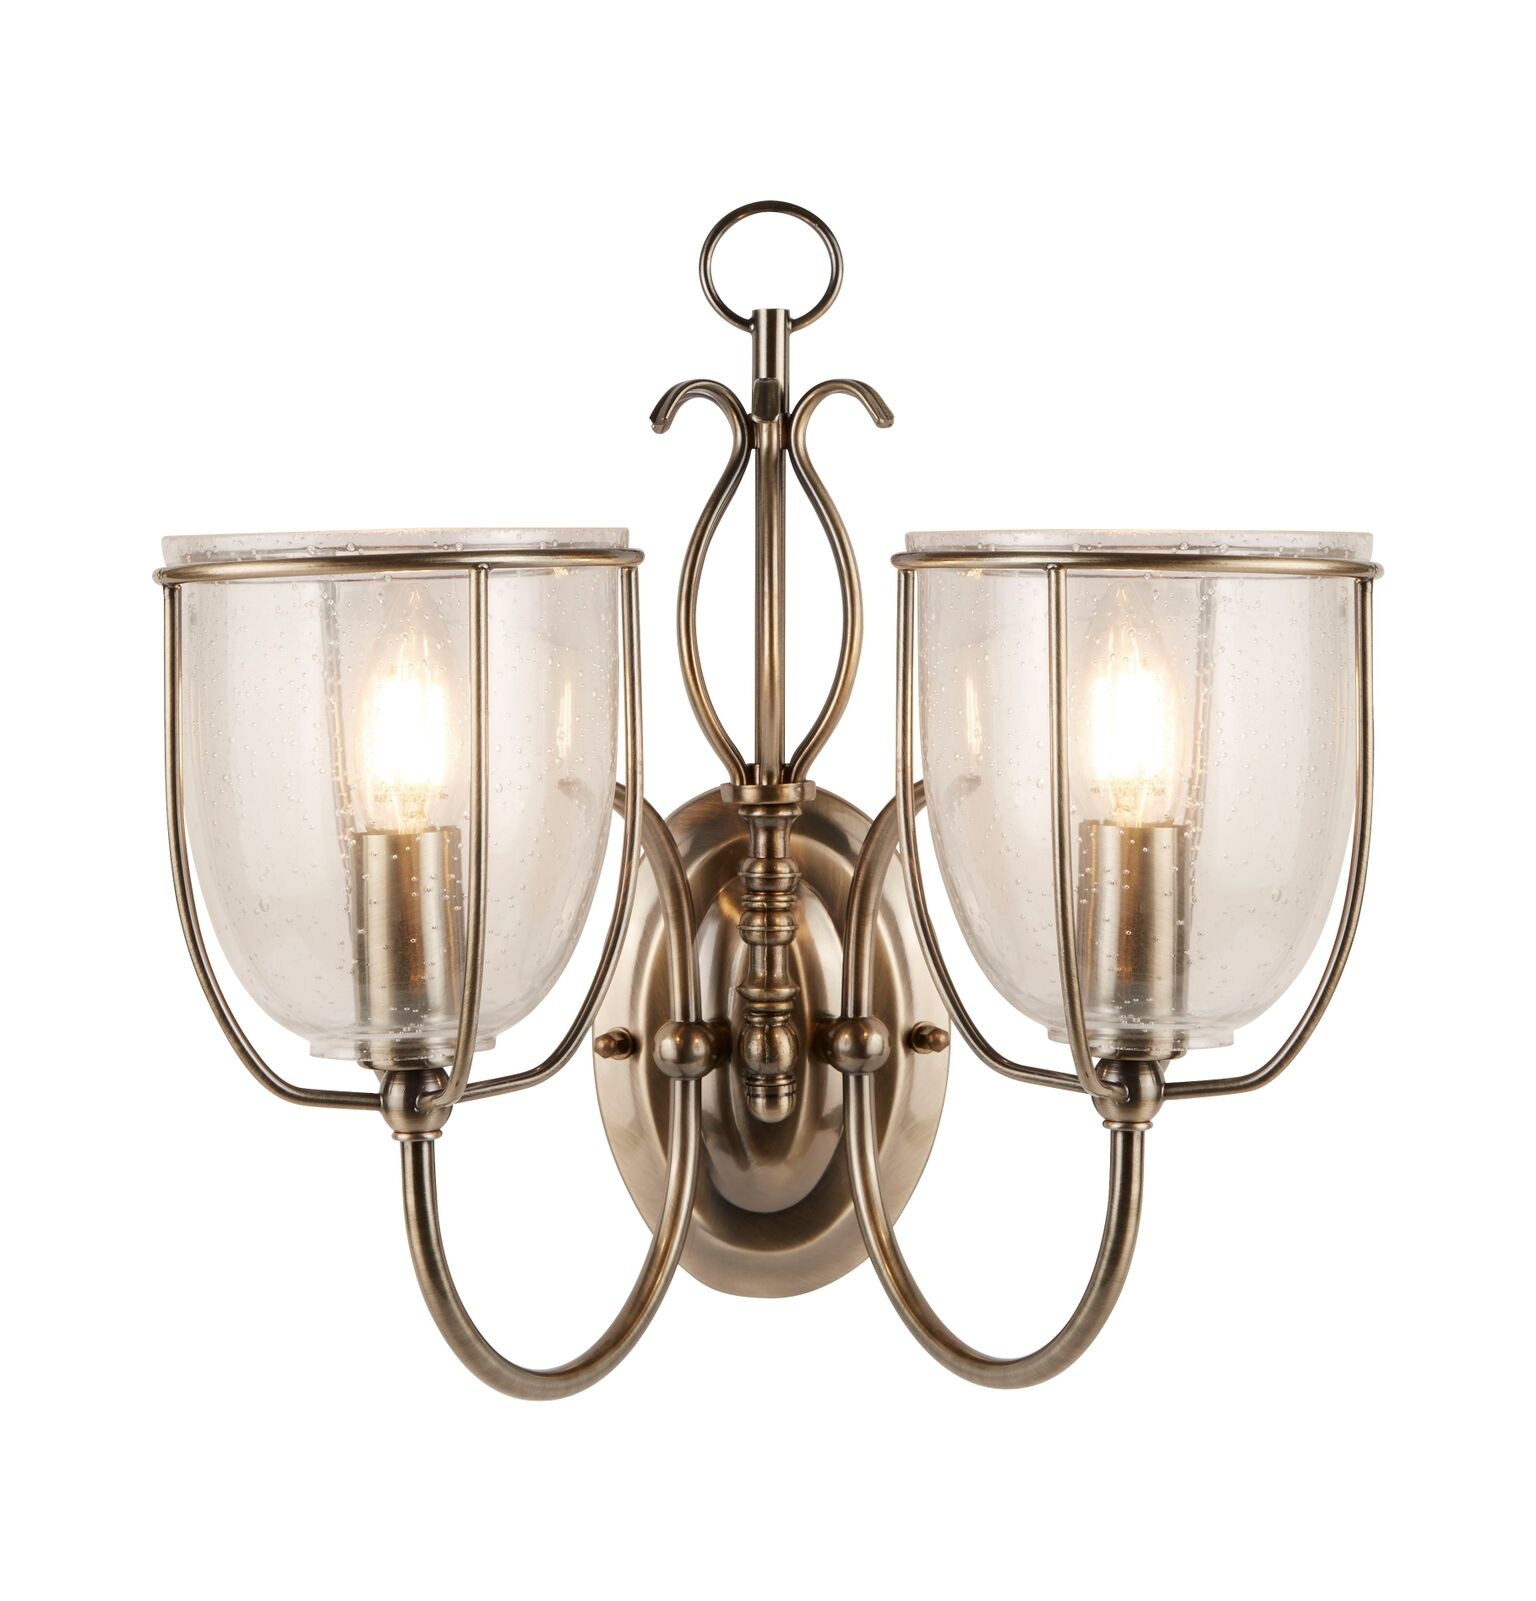 outlet store c6902 ece10 Classico - Ornate Seeded Glass Double Wall Light - Antique Brass